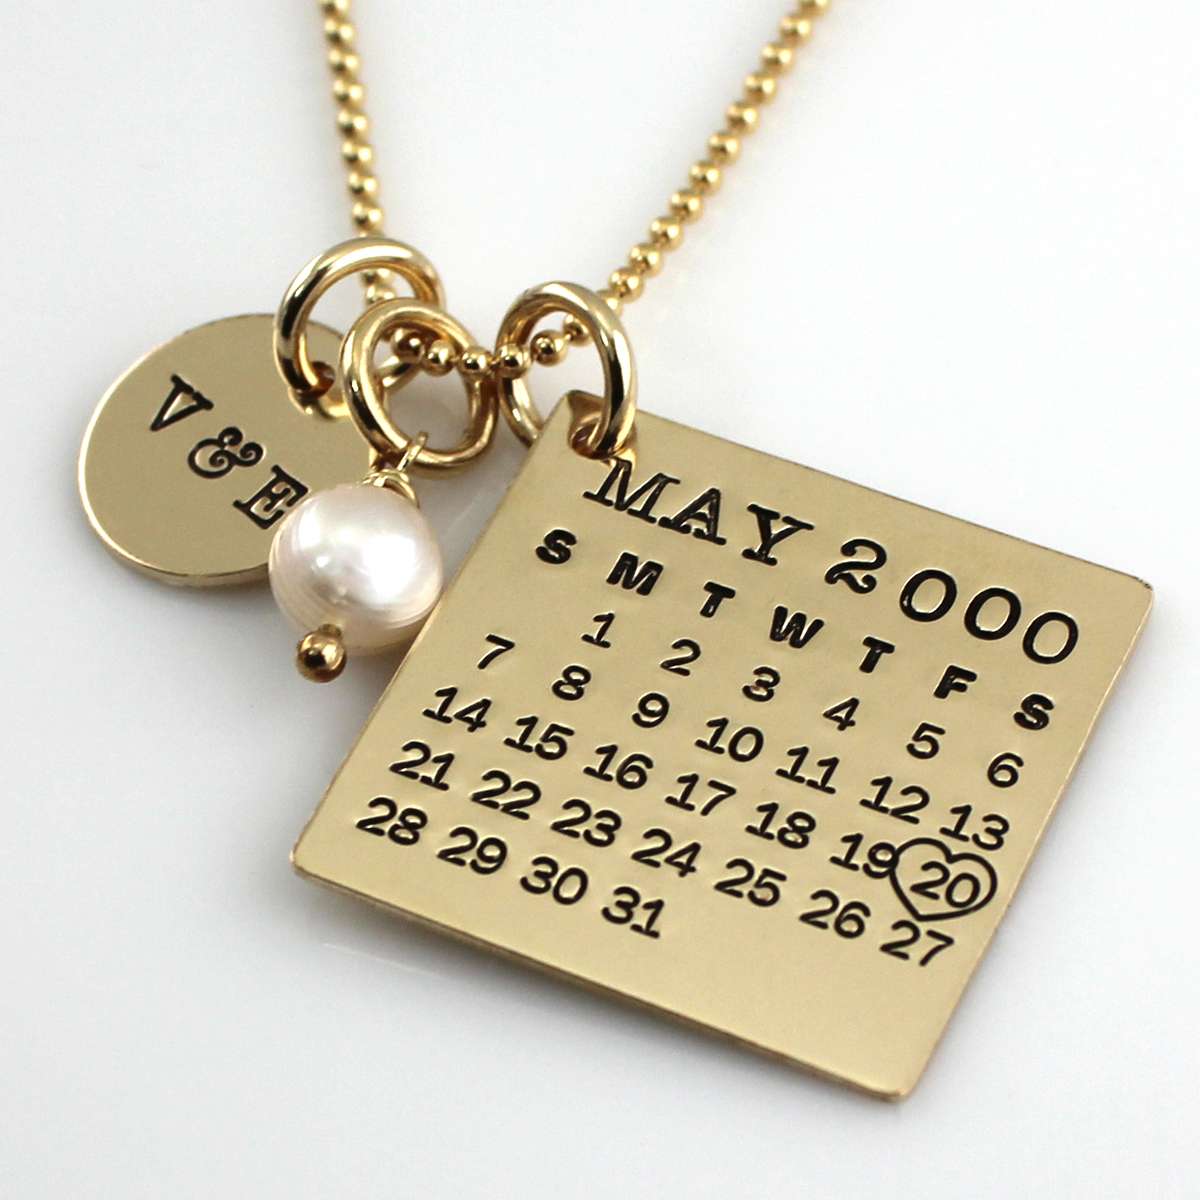 Mark Your Calendar Necklace with You & Me Charm - Gold Filled